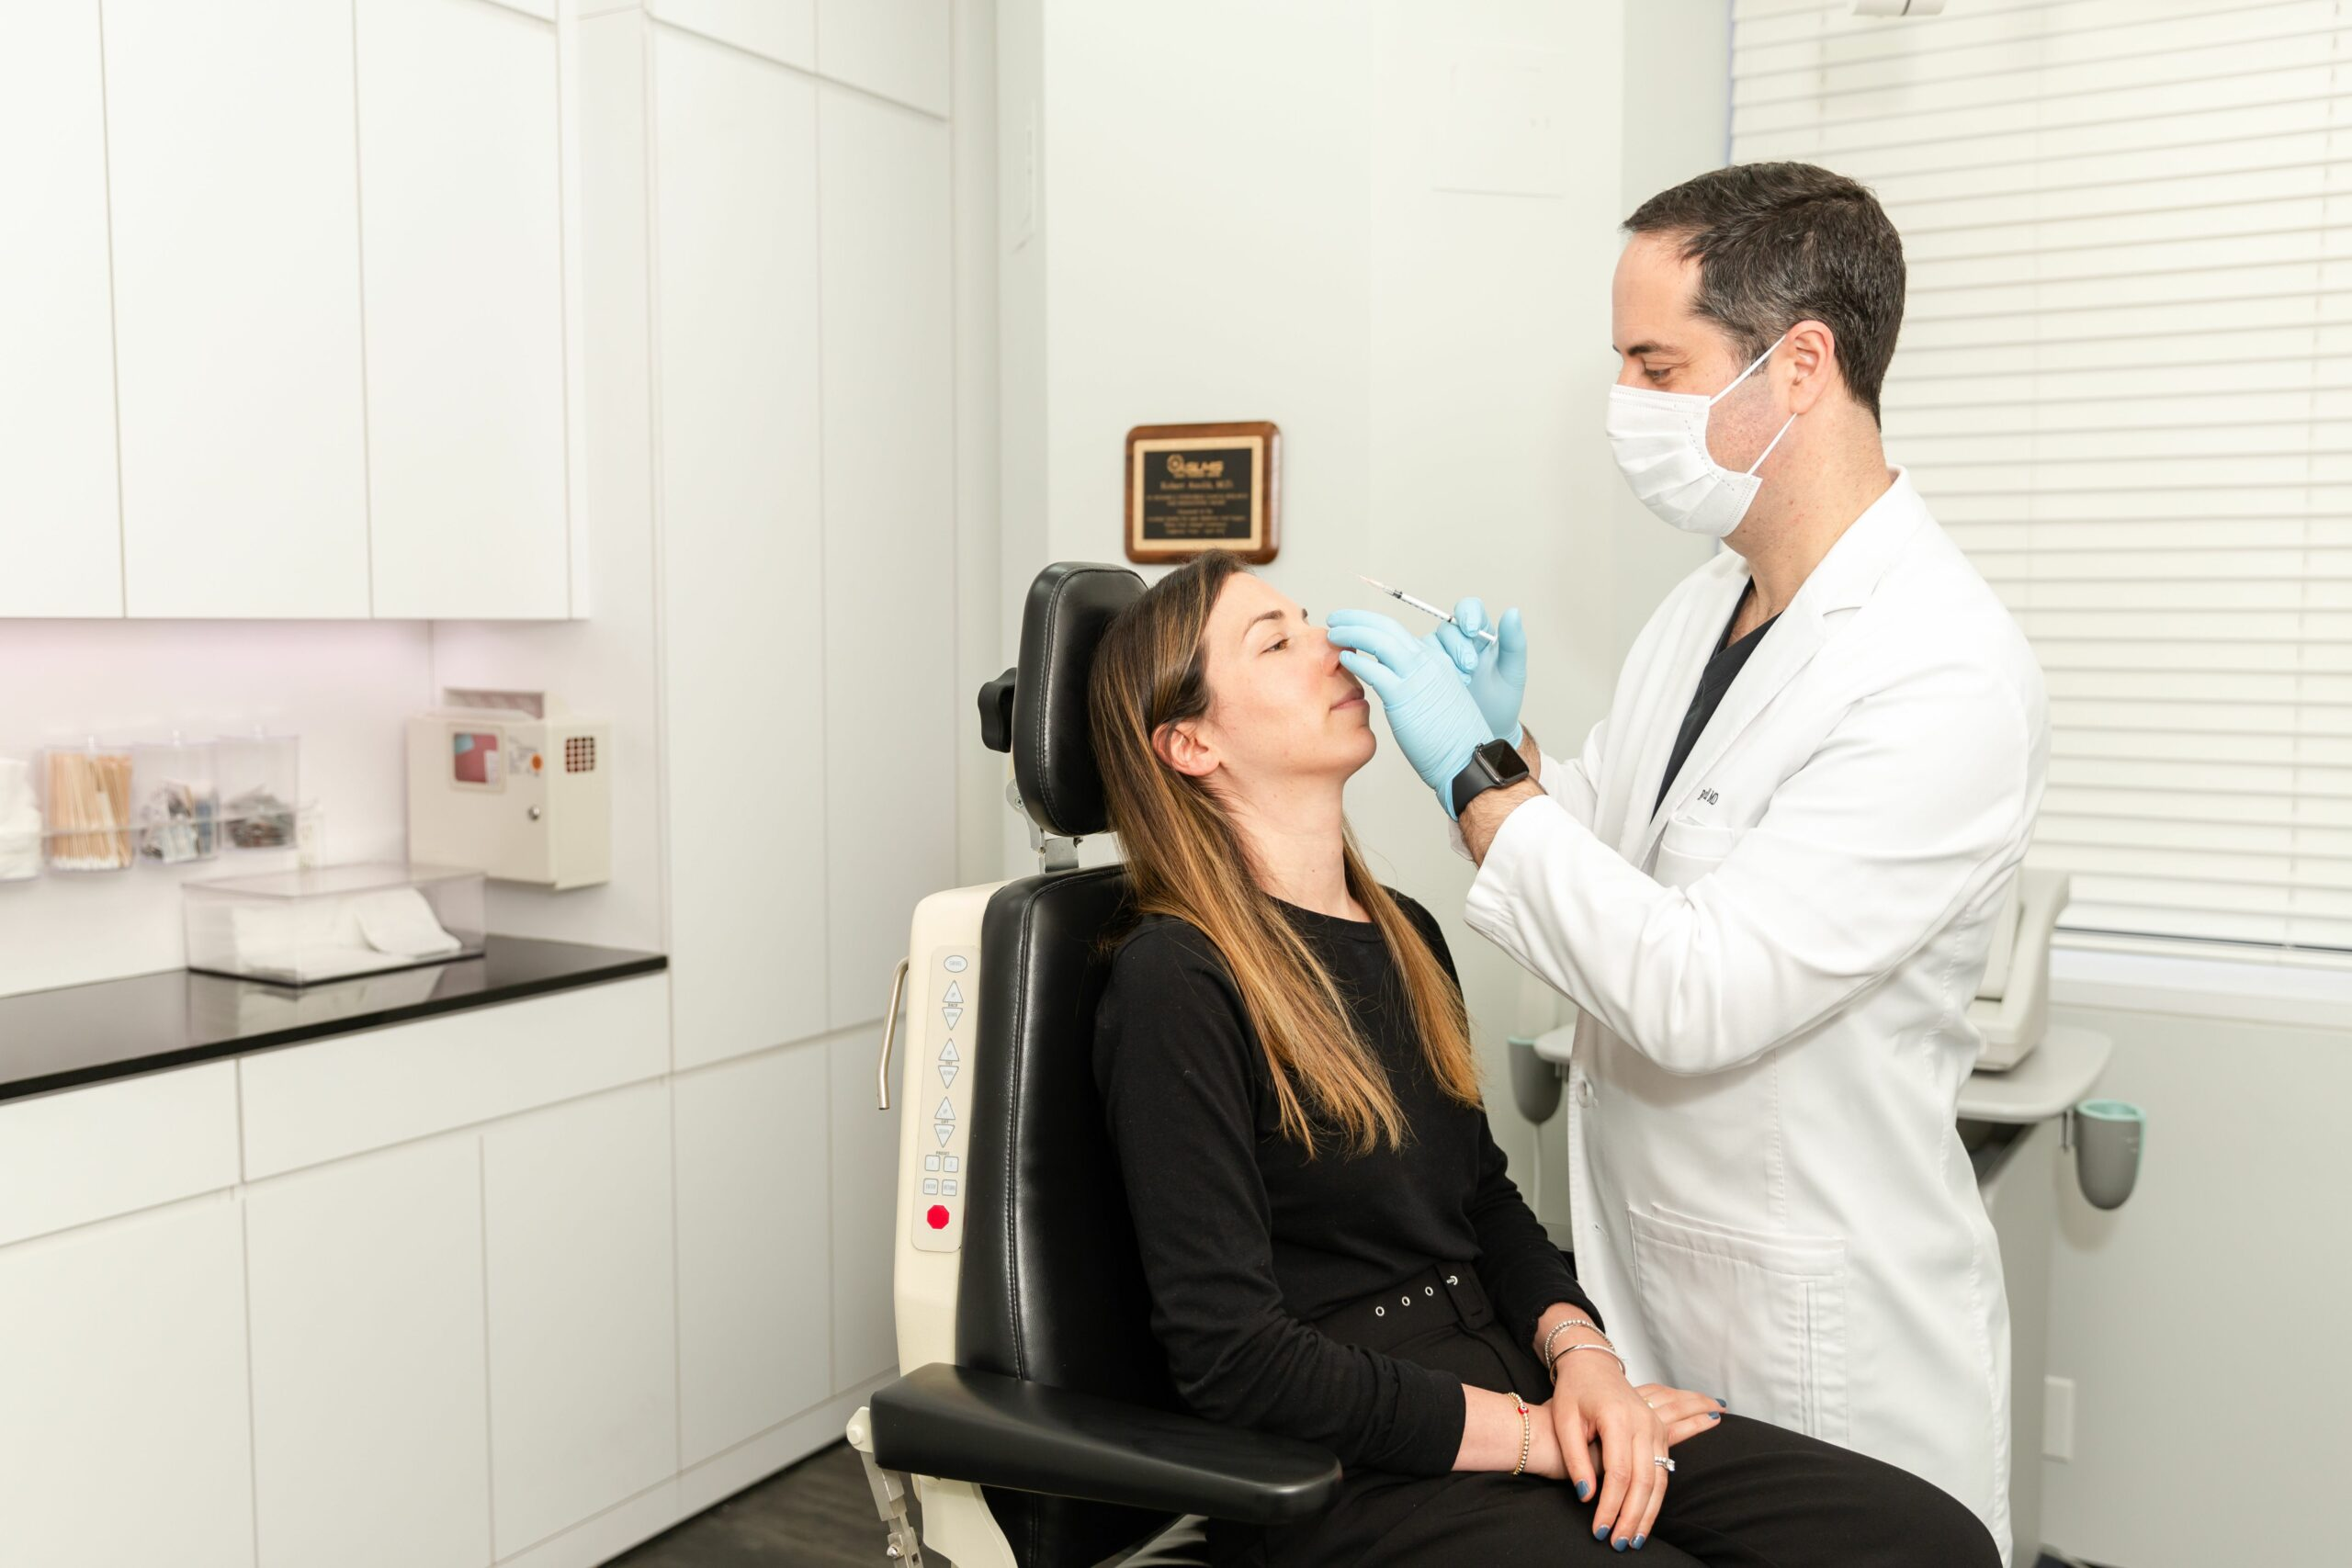 When Botox is injected into a muscle, the muscle temporarily relaxes for up to 3 to 4 months.